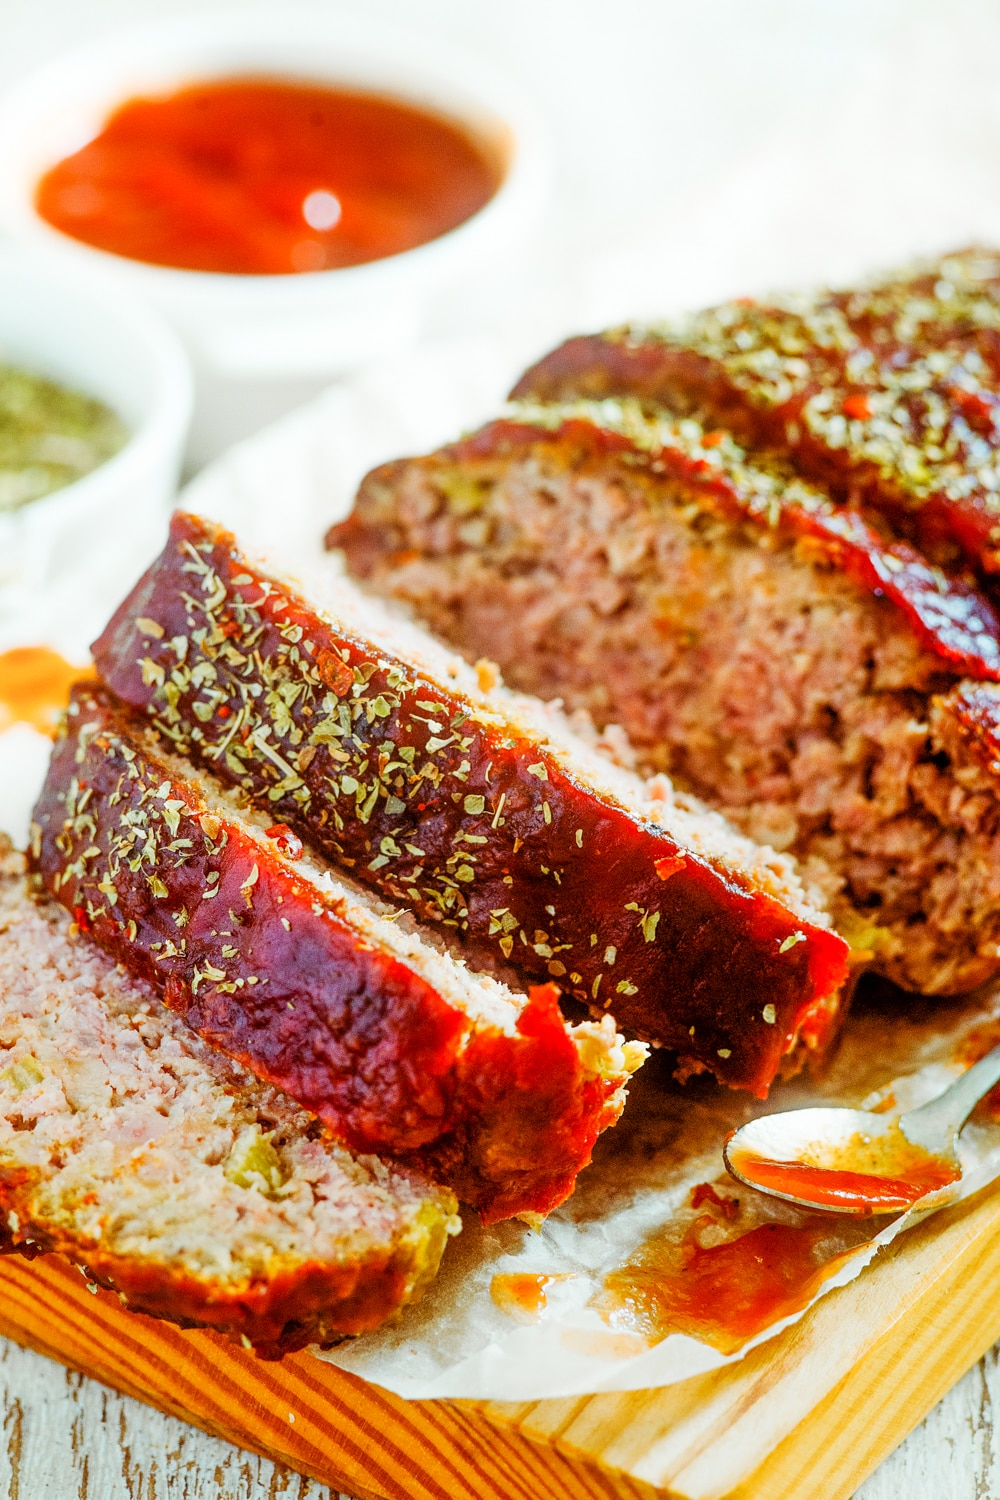 Meatloaf cut into slices.